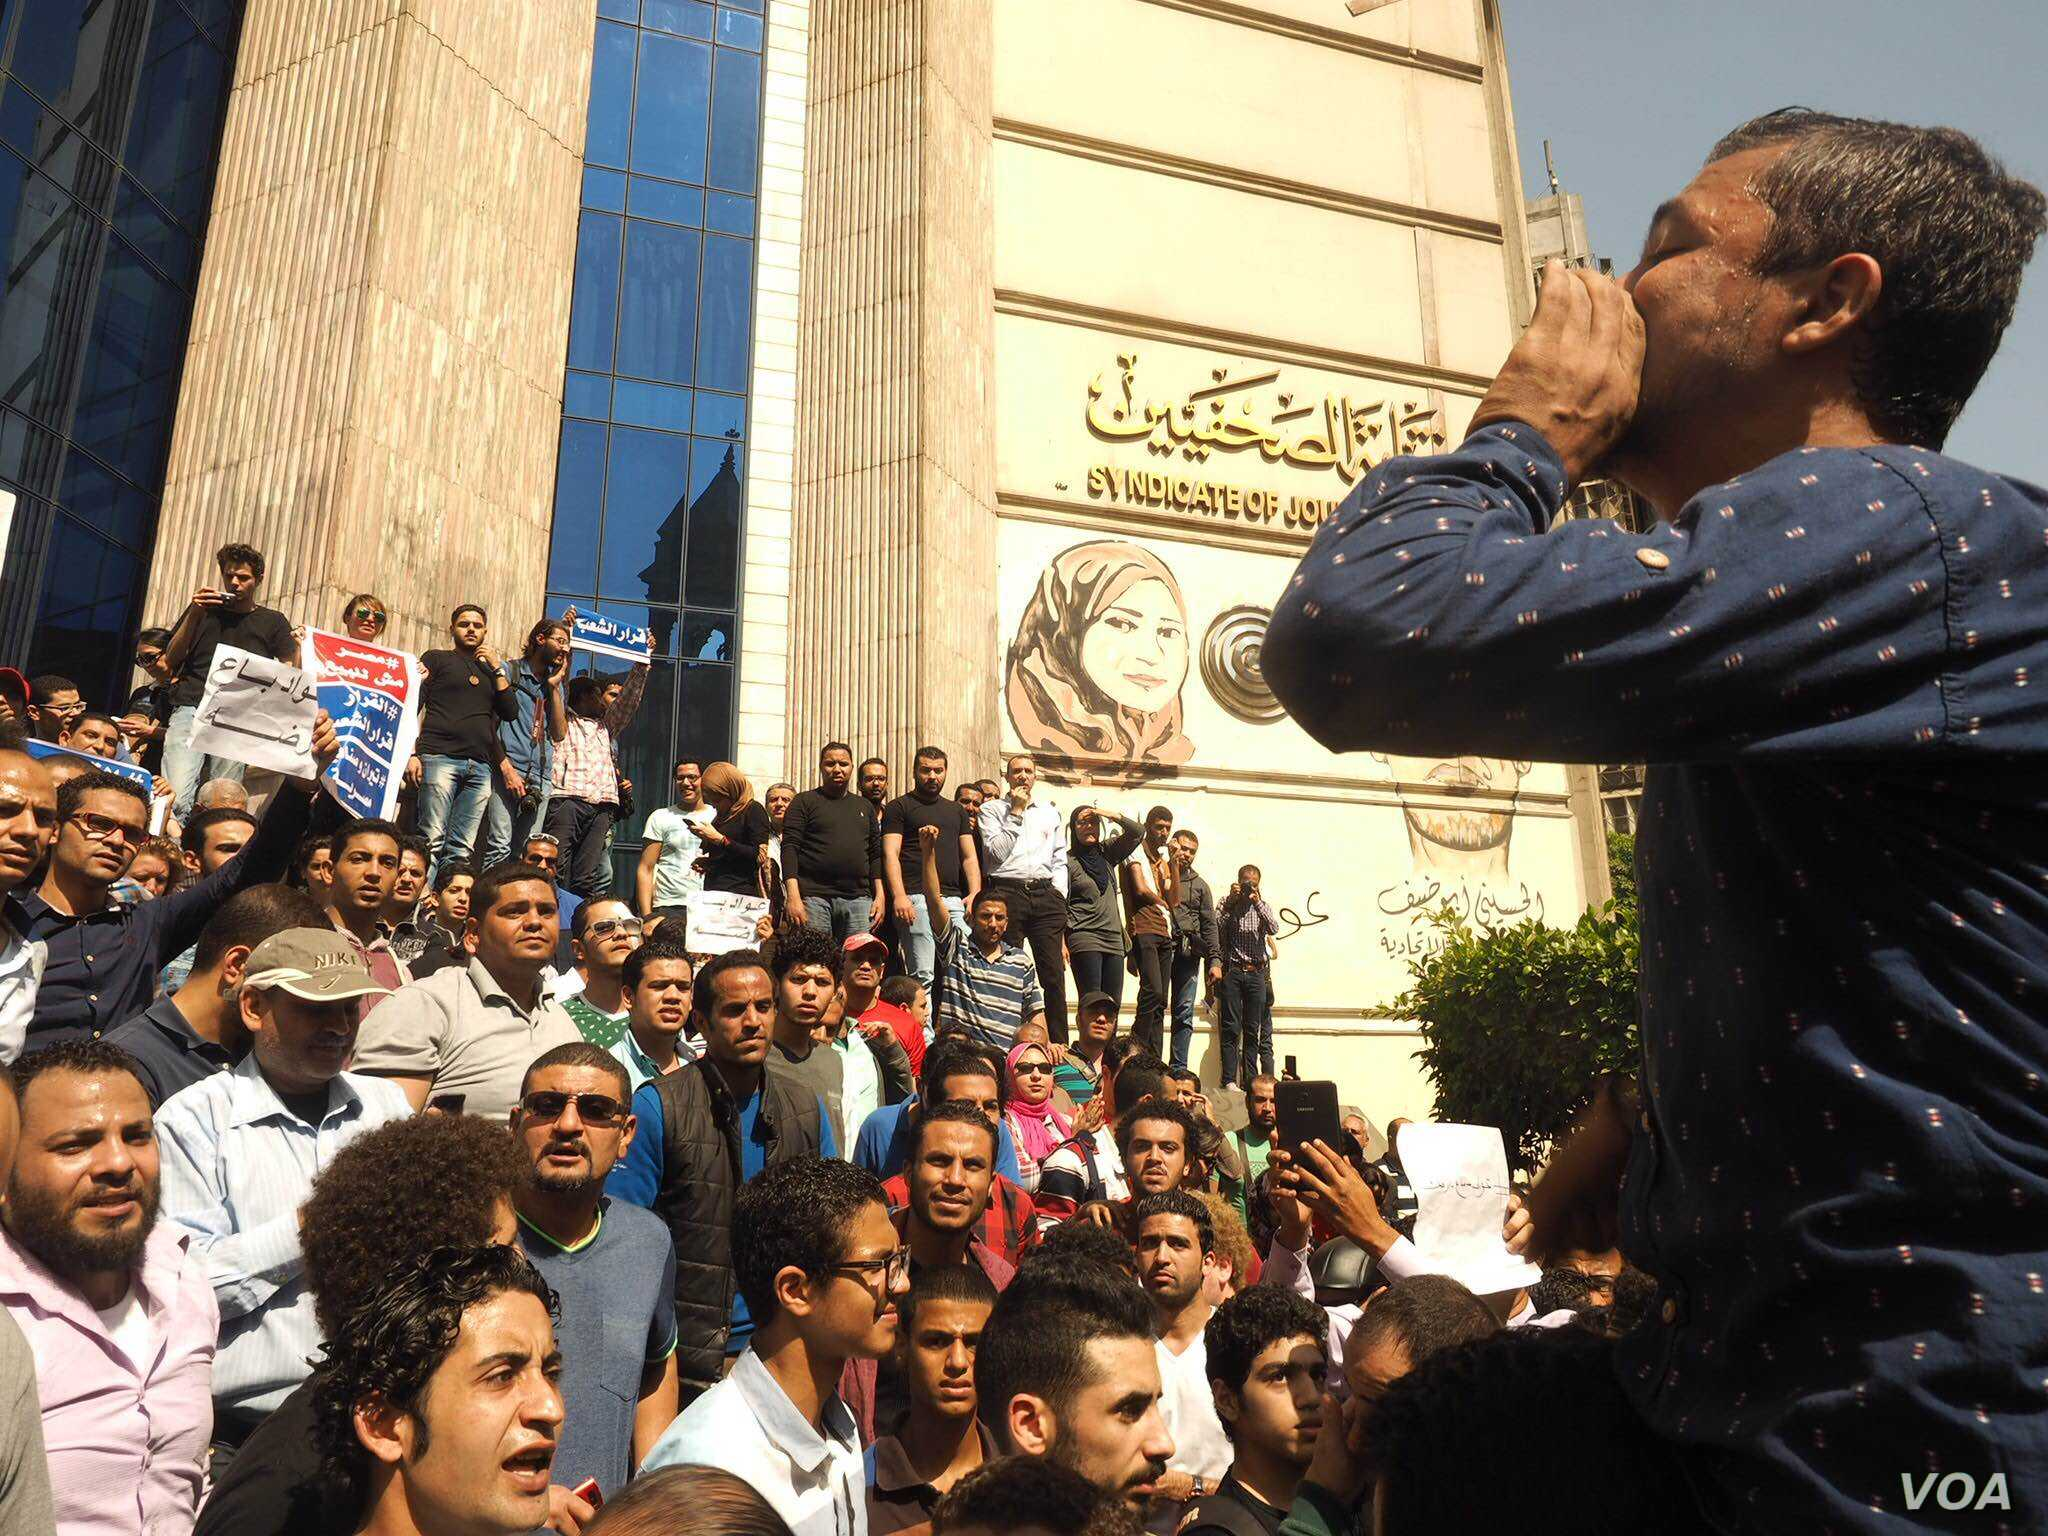 """Overt government opposition on the streets has been rare in the past two years, but protesters say the islands were """"the straw that broke the camel's back"""" in downtown Cairo, April 15, 2016. (VOA/H. Elrasam)"""